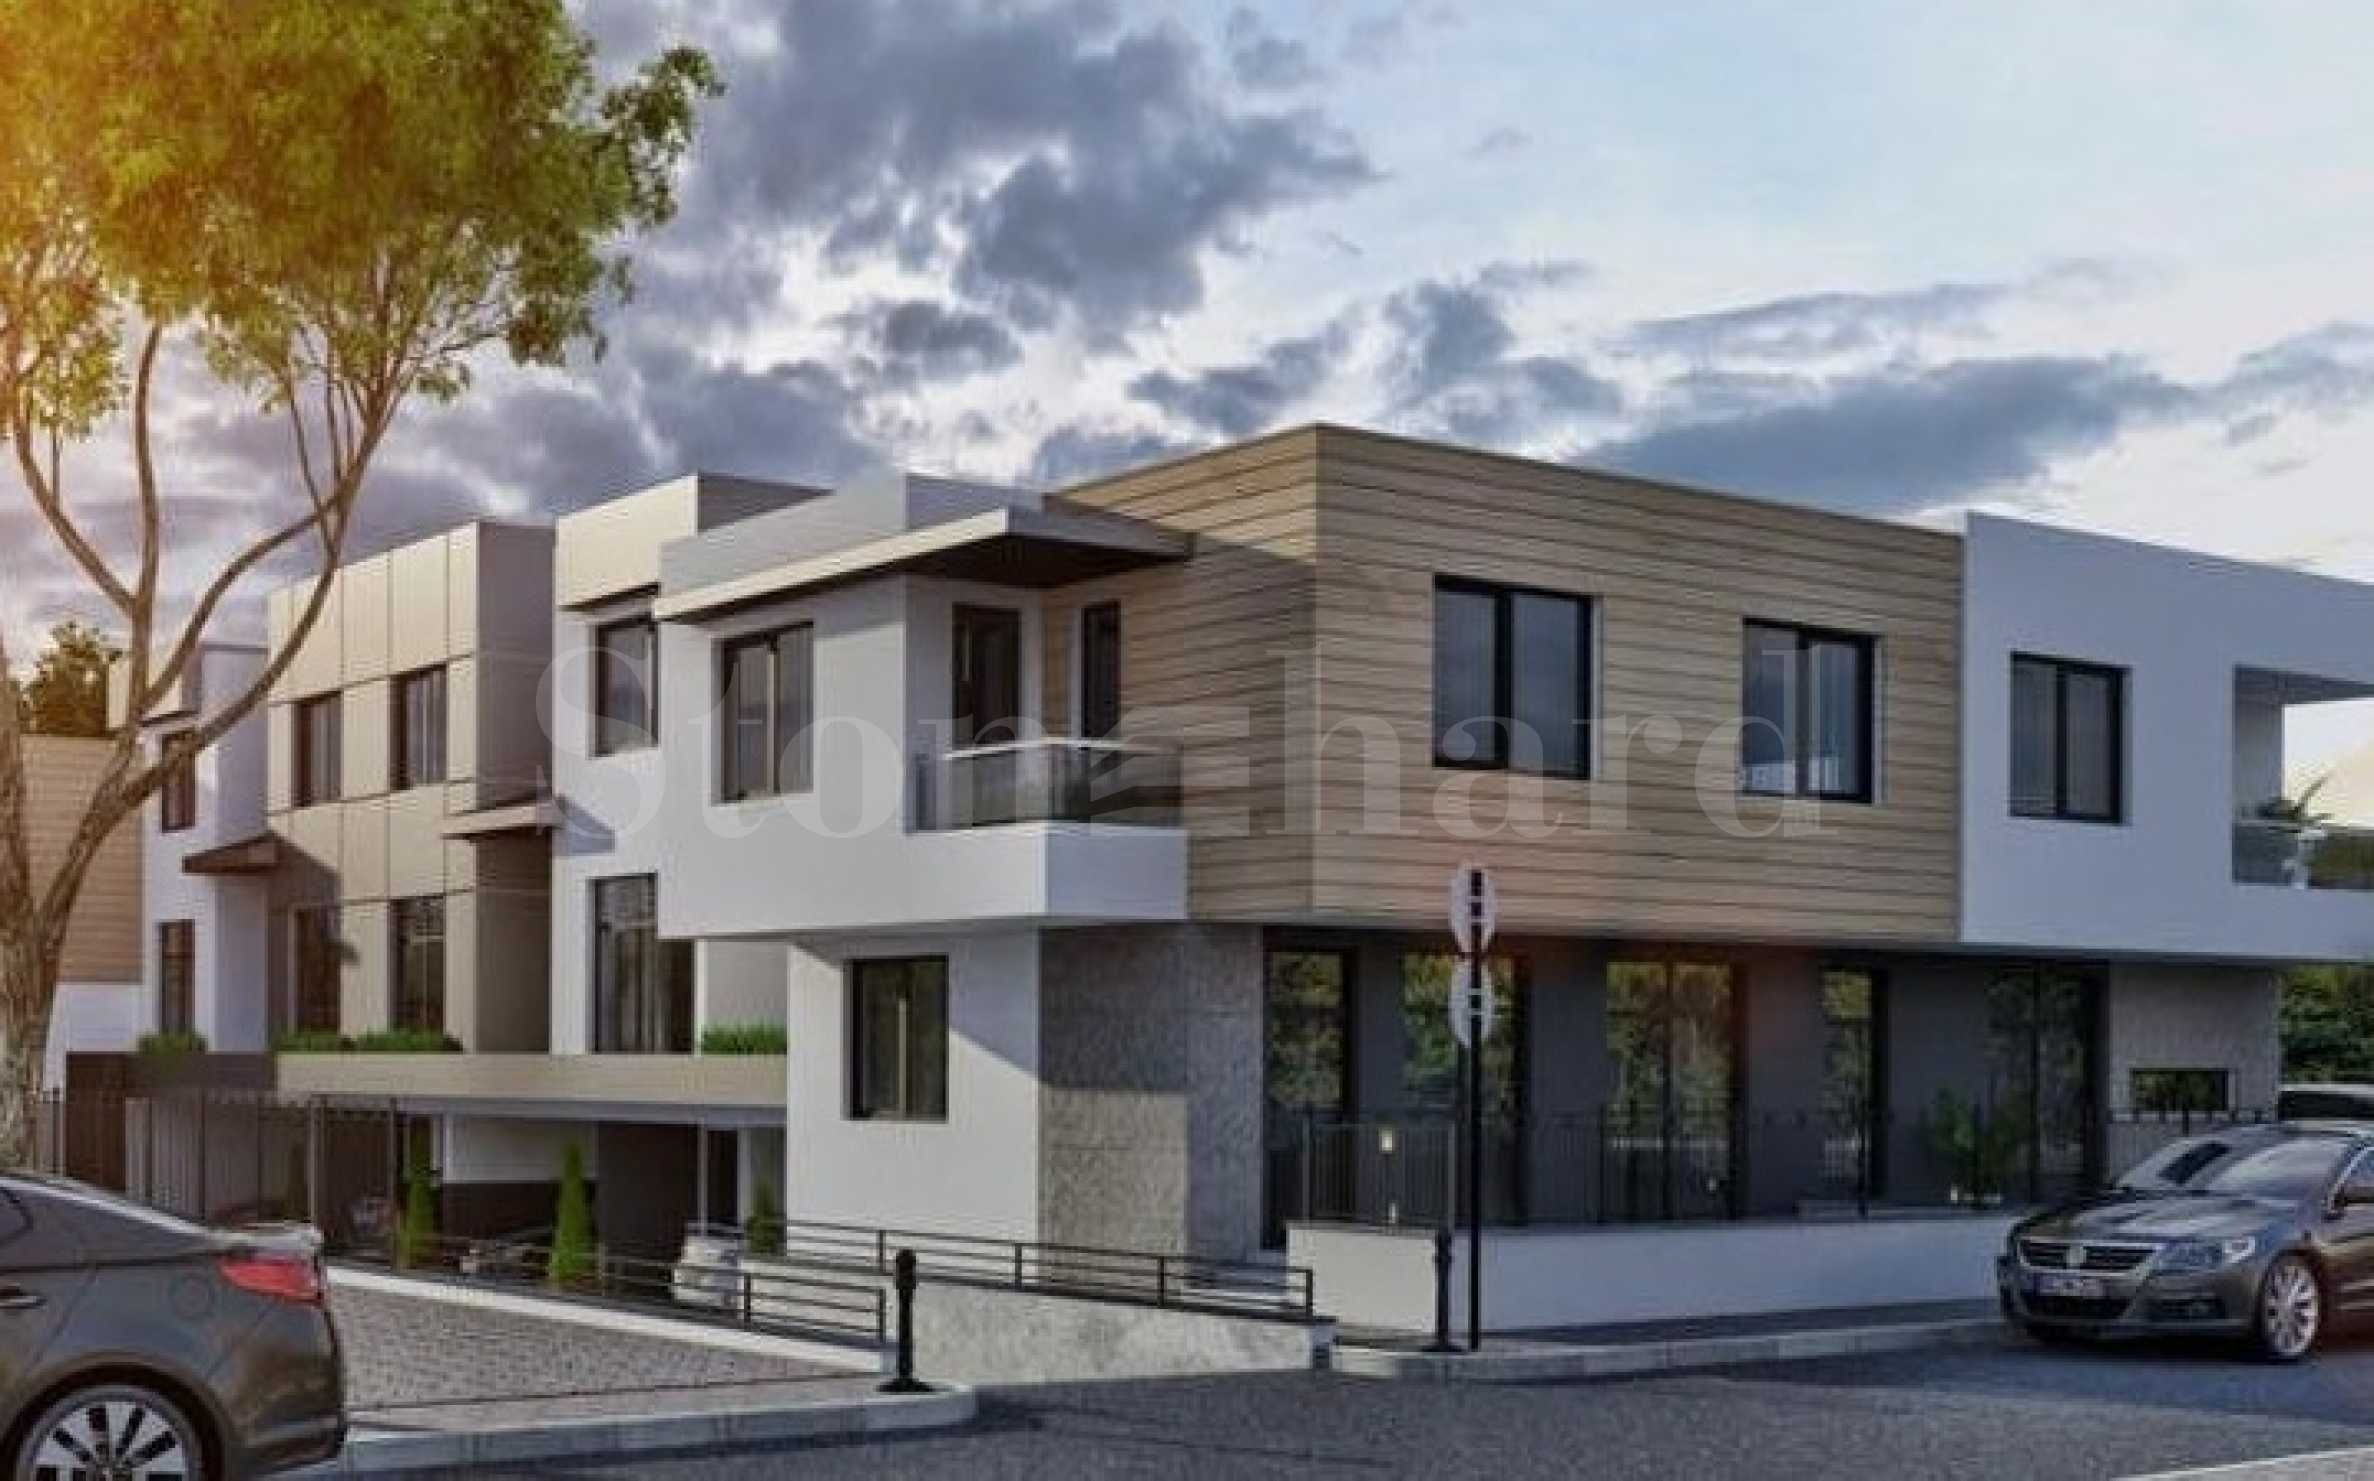 Townhouses from 730 €/m² - at a price of an apartment in a preferred area1 - Stonehard